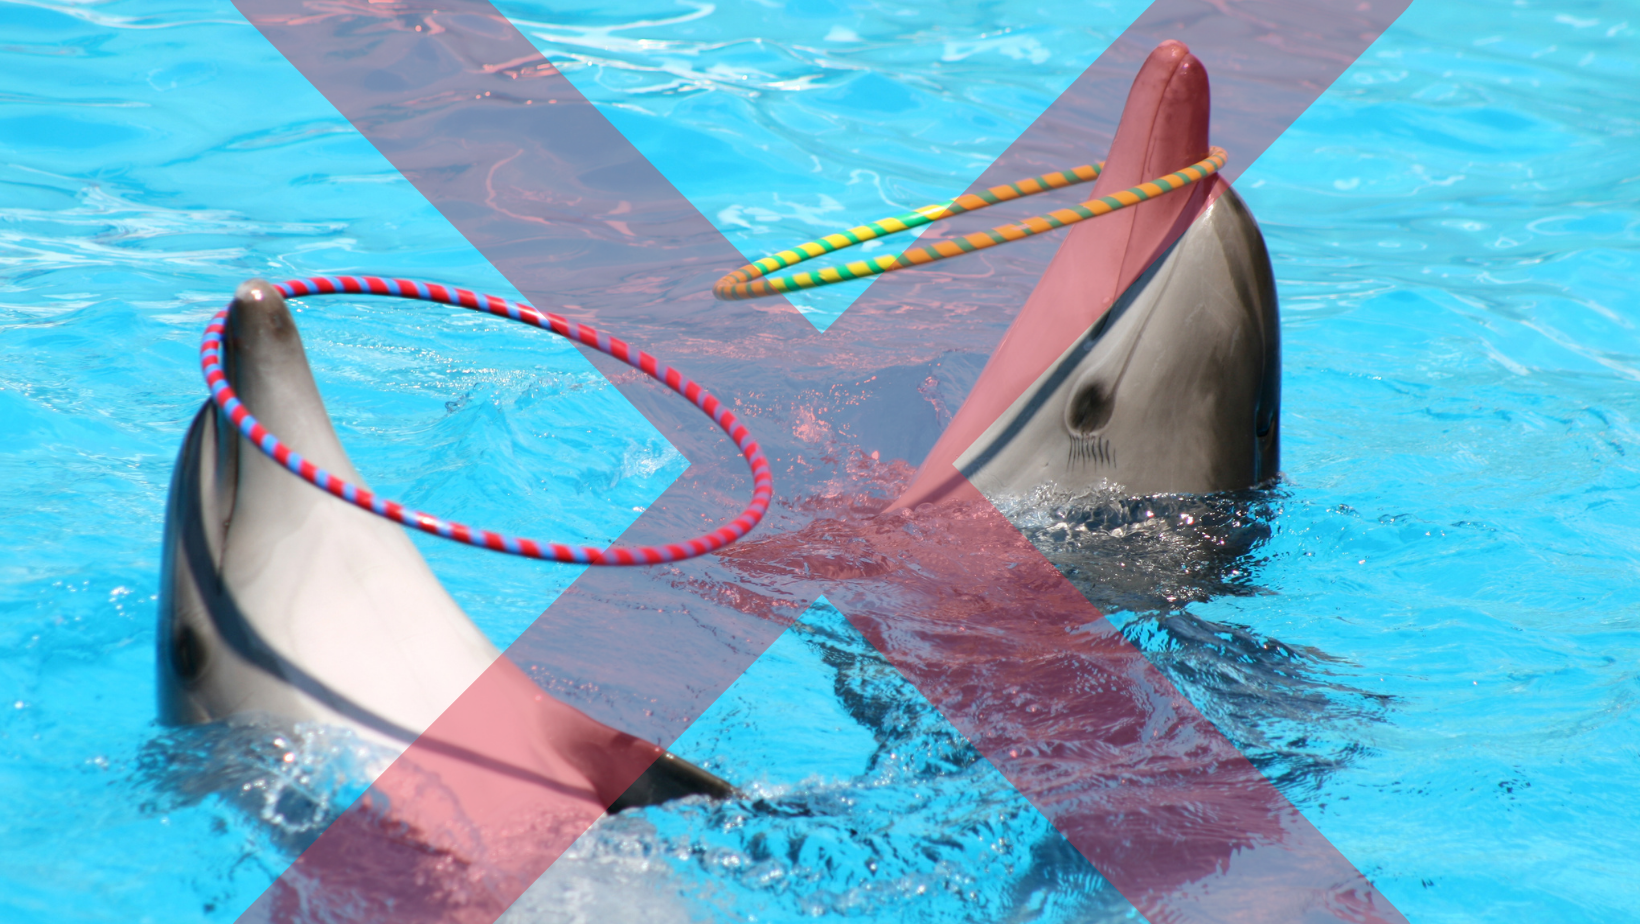 Unnatural dolphin shows with dolphins balancing hoops